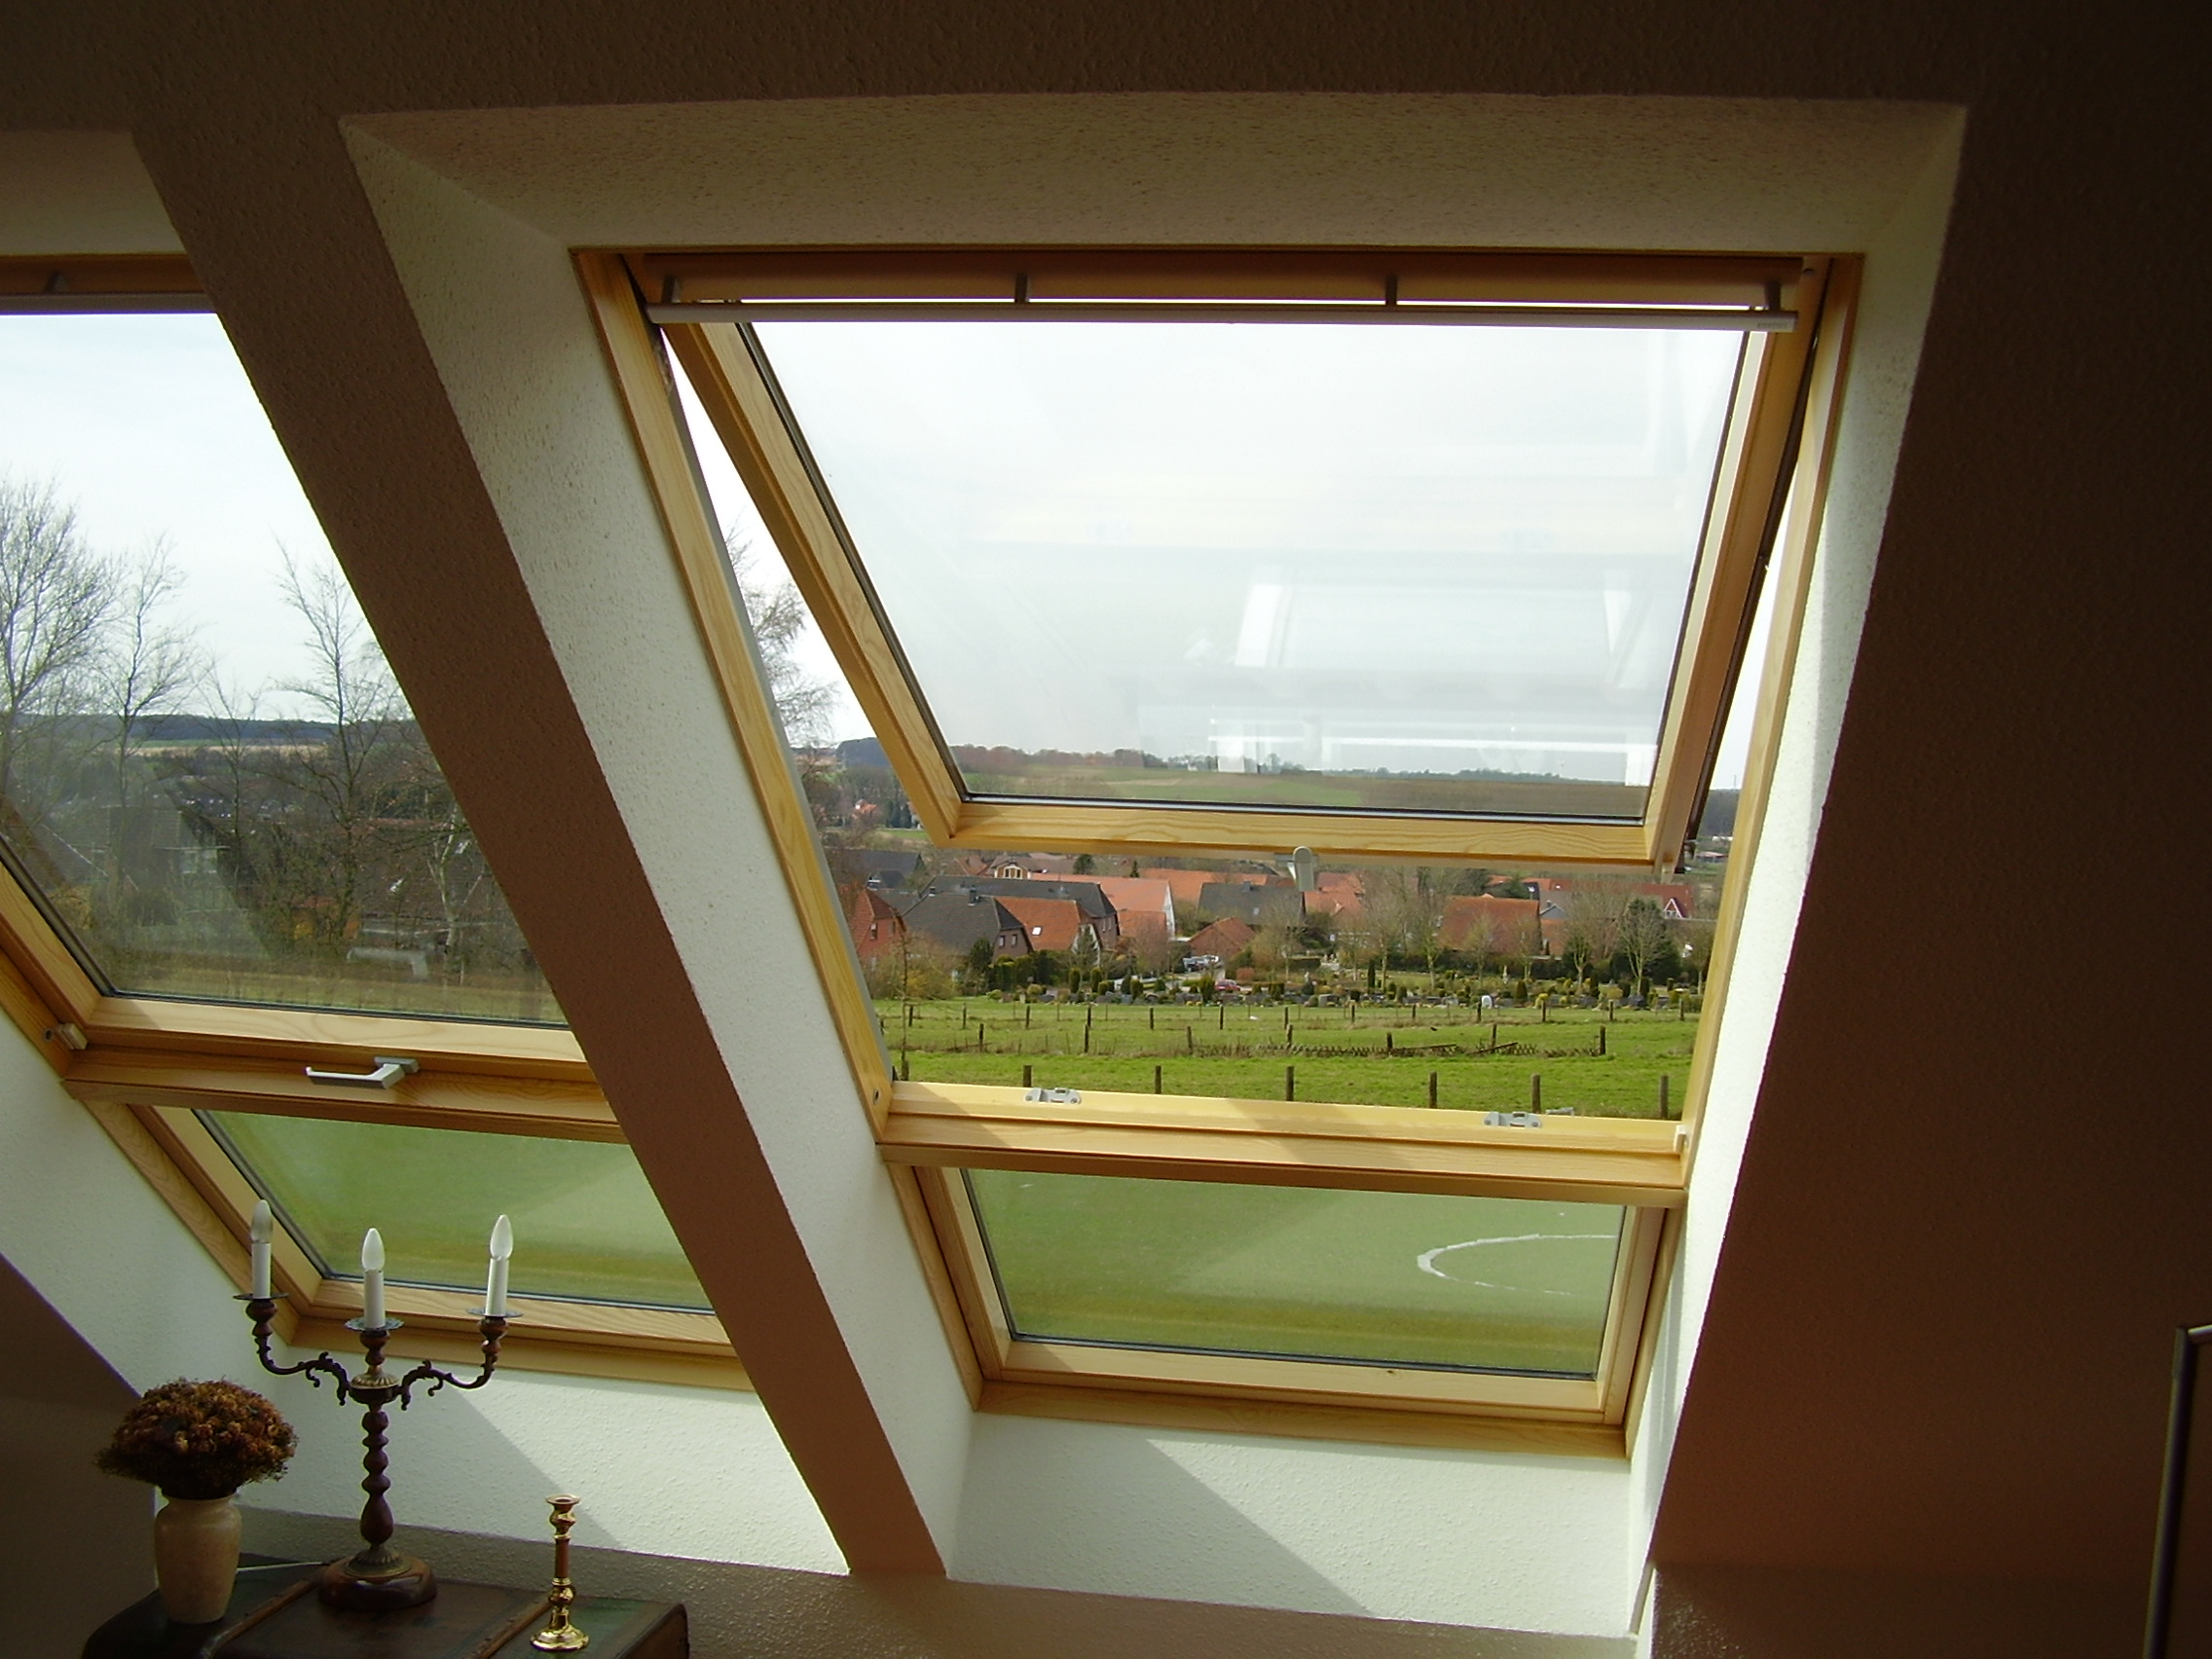 Ventanas Tipo Velux File Dachfenster 5 Jpg Wikimedia Commons